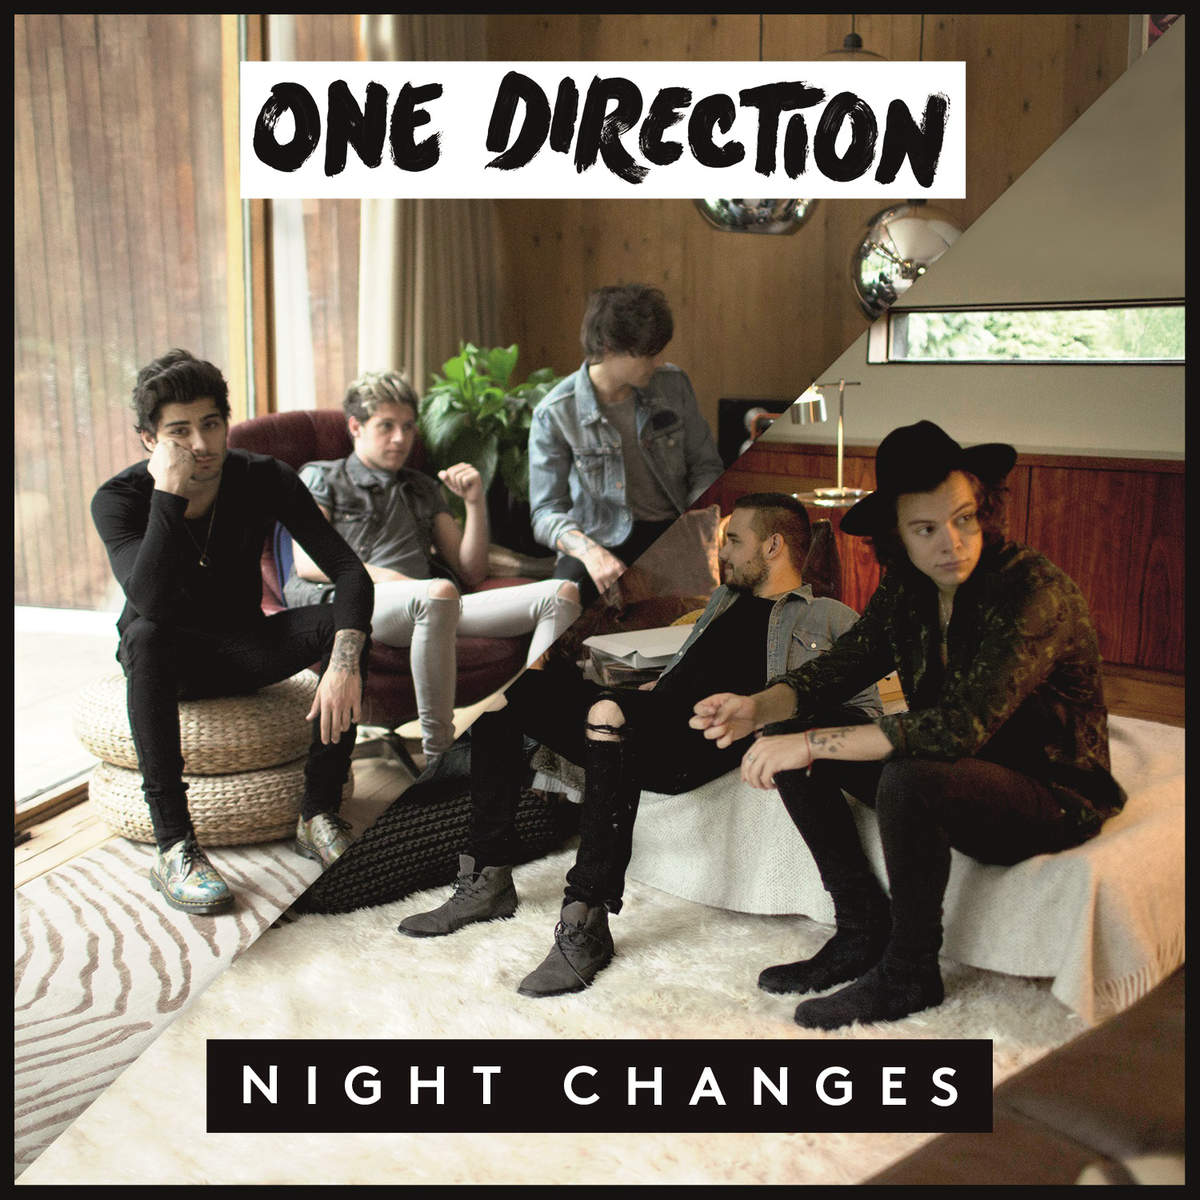 """One Direction - """"Night Changes"""" - Music Video • mjsbigblog One Direction Names In Words"""